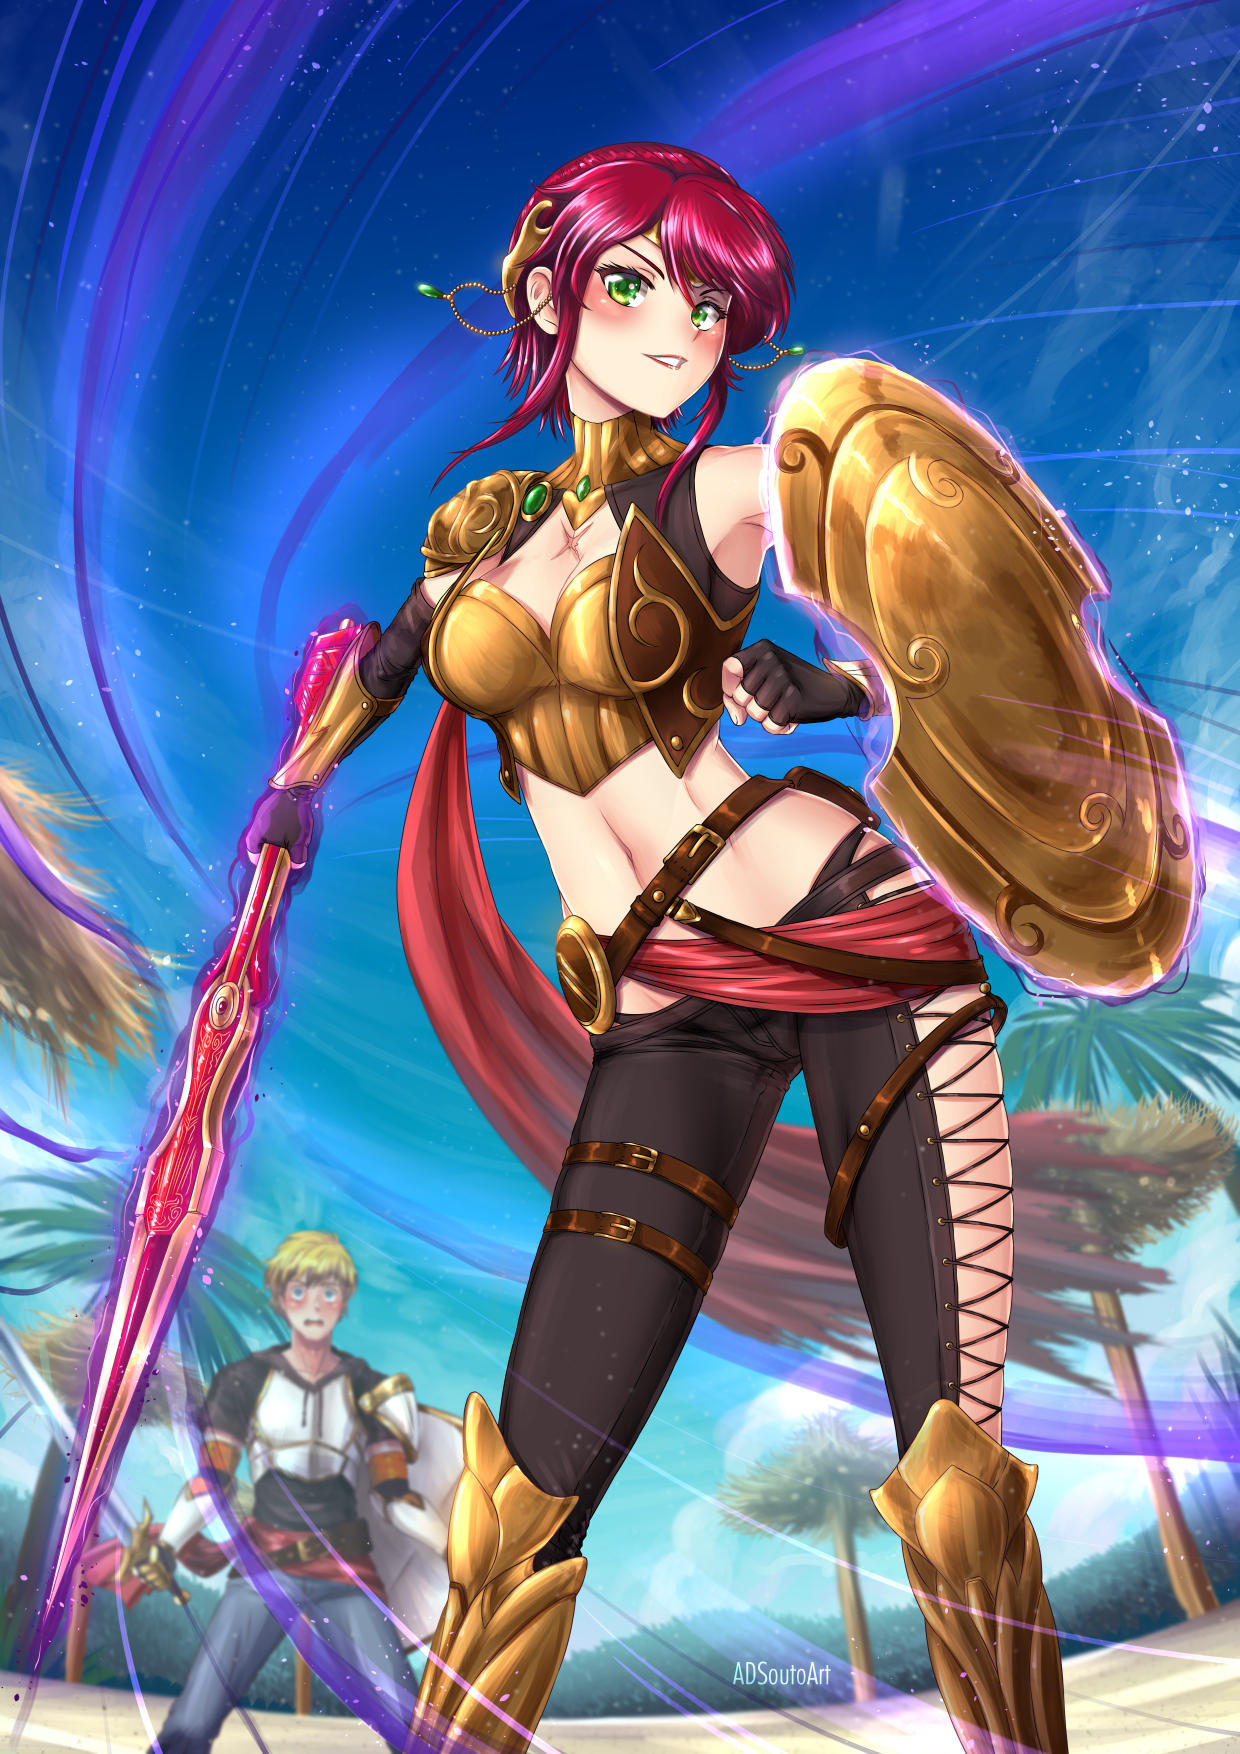 1boy 1girl adsouto alternate_costume alternate_hairstyle arm_guards armlet armor belt belt_pouch black_gloves black_panties black_pants black_shirt blonde_hair blue_eyes blue_pants blush boobplate boots breastplate breasts brown_gloves buckle buckler bustier chest_scar circlet commentary crocea_mors_(rwby) denim elbow_gloves english_commentary fingerless_gloves forehead_protector gloves gorget greaves grin gun high_heel_boots high_heels highres holding holding_shield holding_sword holding_weapon jaune_arc javelin jeans leg_armor looking_at_viewer medium_breasts milo_and_akouo multiple_boys outdoors panties pants pauldrons polearm pouch pyrrha_nikos redhead rifle rwby sarong scar shield shirt short_hair shorts shoulder_armor smile spear sword thigh-highs underwear vambraces very_short_hair weapon xiphos_(sword)